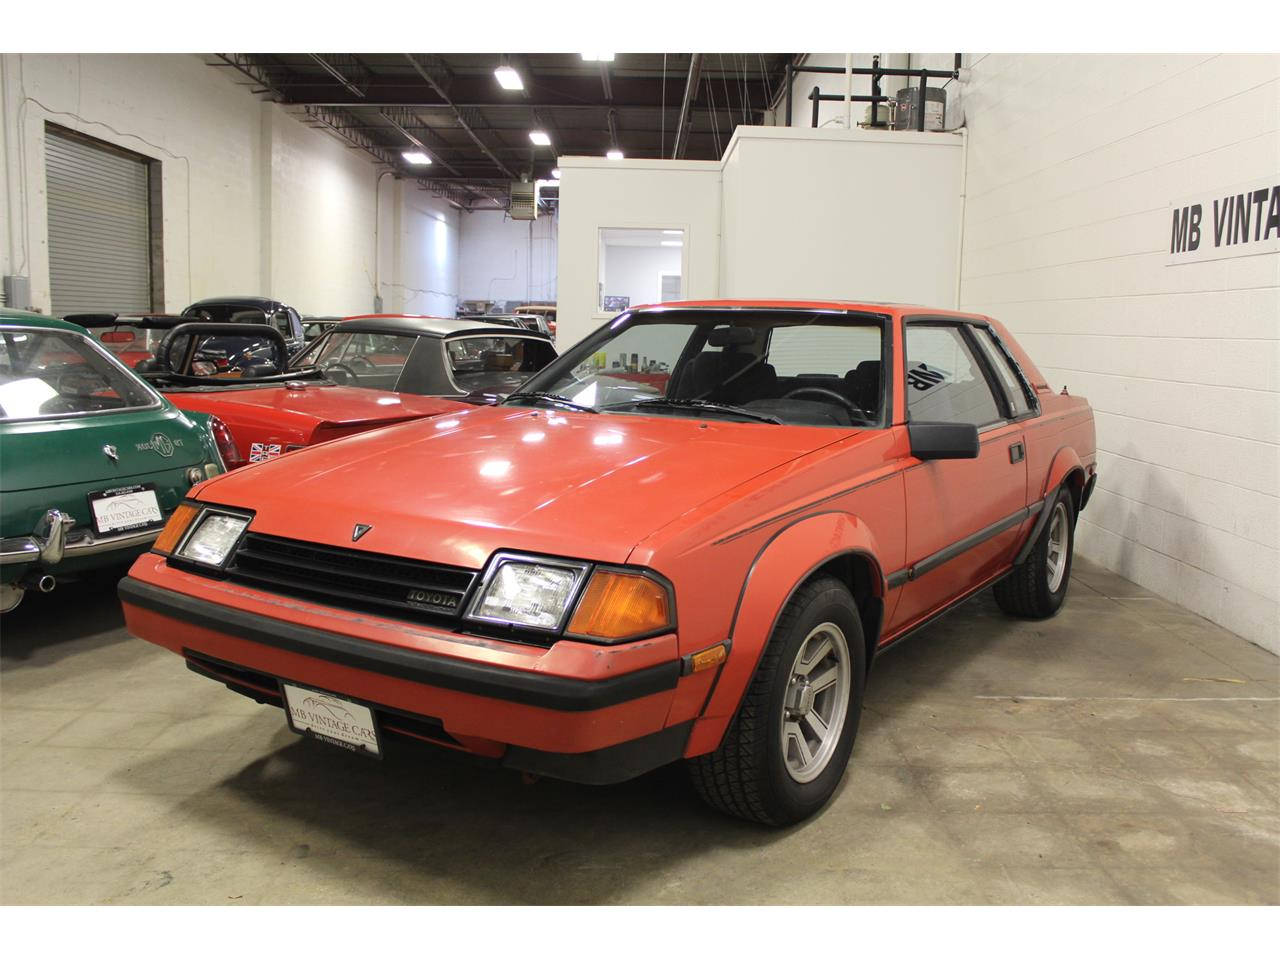 for sale 1983 toyota celica in cleveland, ohio cars - cleveland, oh at geebo